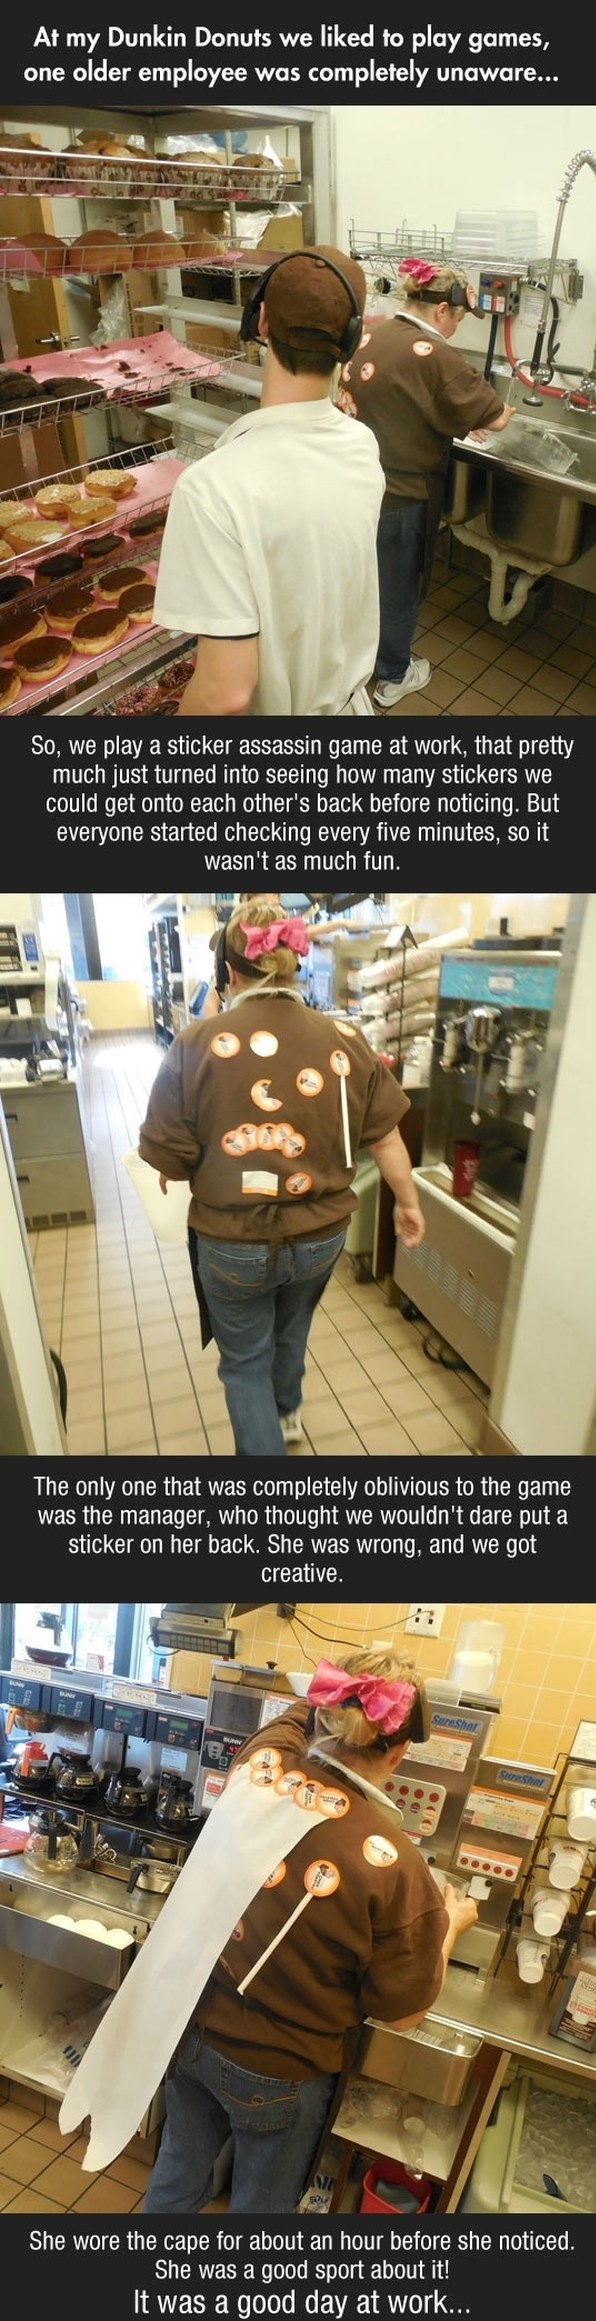 funny-picture-prank-dunkin-donuts